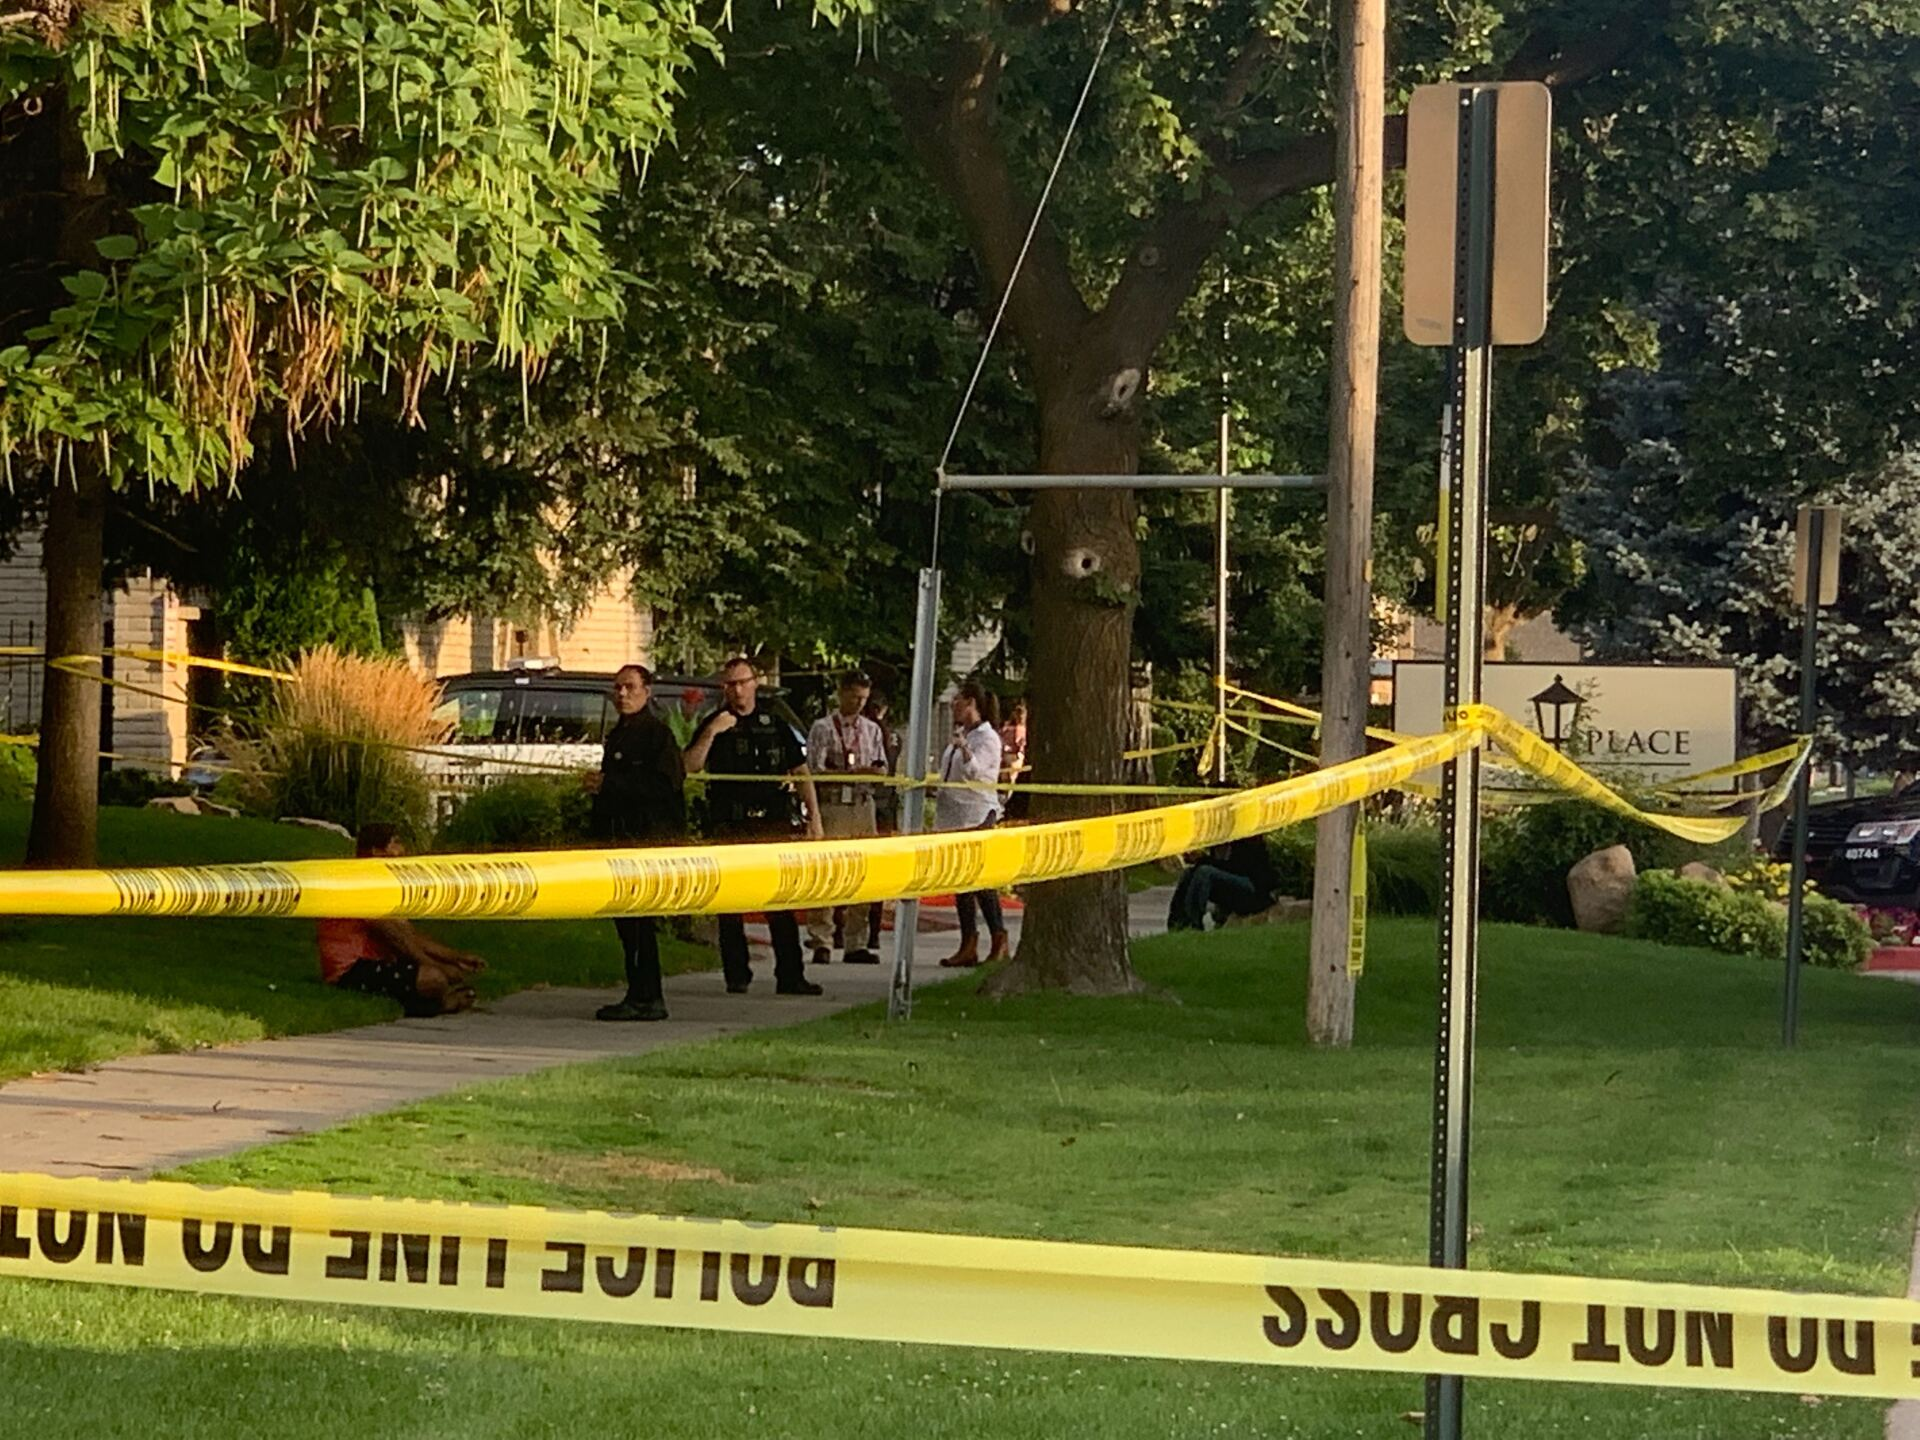 Photos: SLCPD releases new details on officer-involved shooting